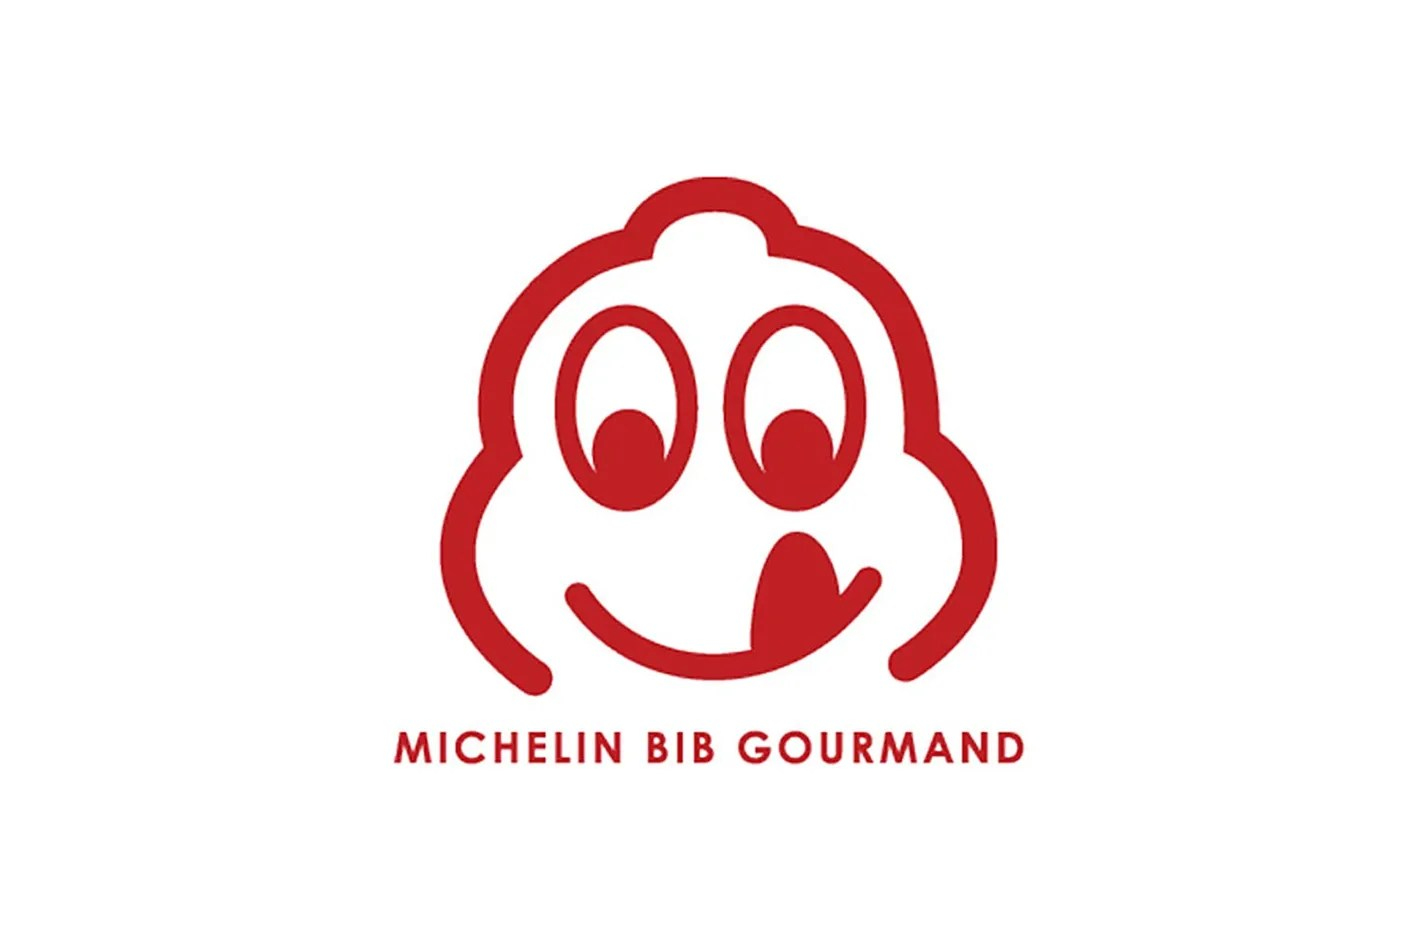 Lulu Cocina Y Vino Menu Here Are The 2016 Michelin Bib Gourmand Selections For New York City